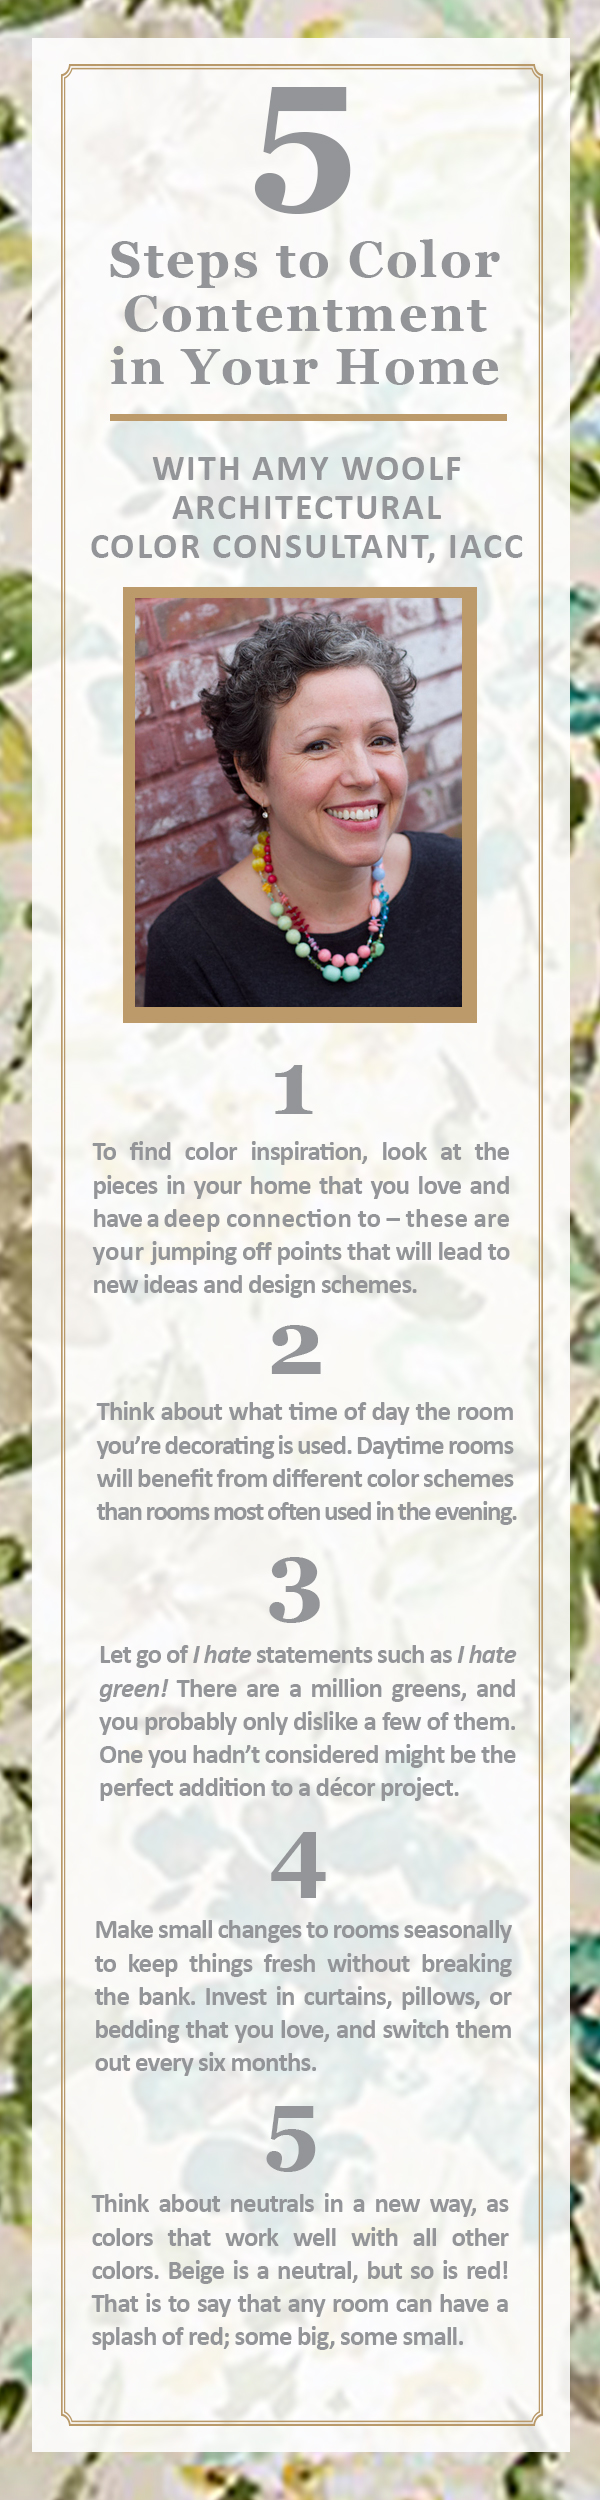 5 Steps to Color Contentment in your home #decotips #color #homedecor #colorsconsultant #paint #curtains #bedding #amywoolf #infographic #antiquewatercolor